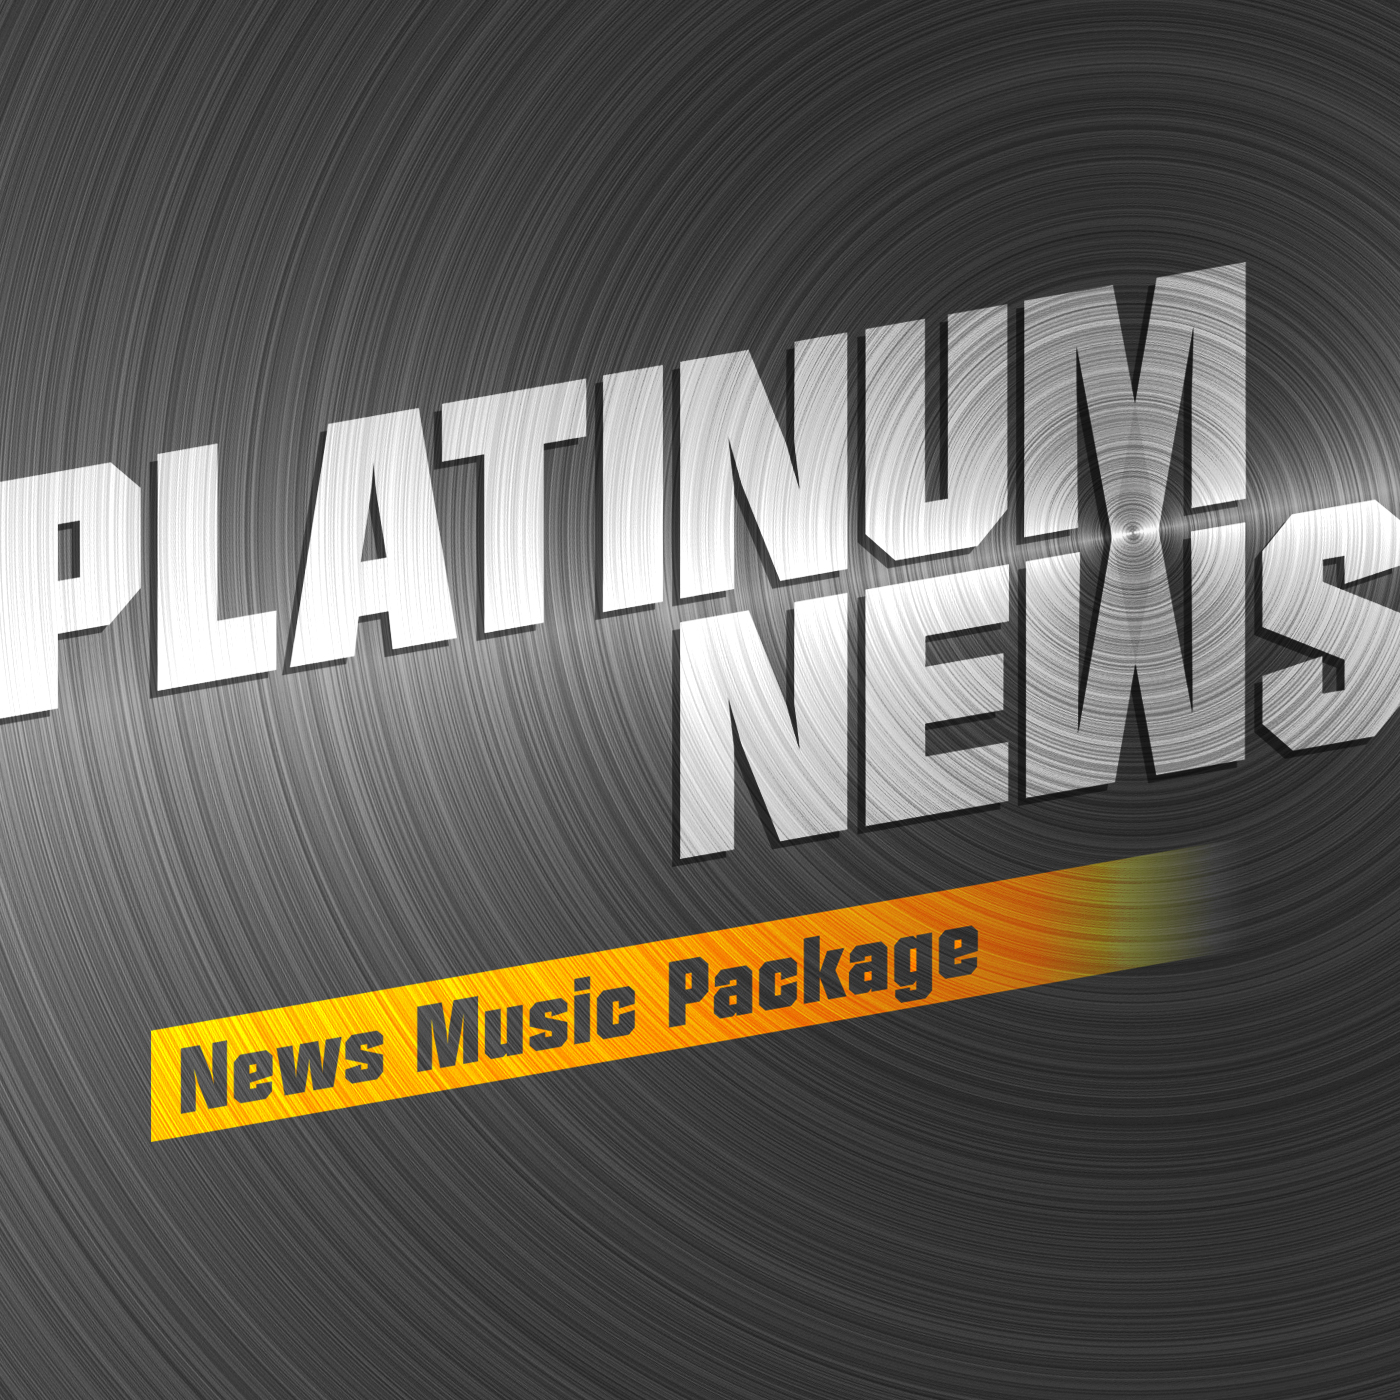 Platinum News Music Package